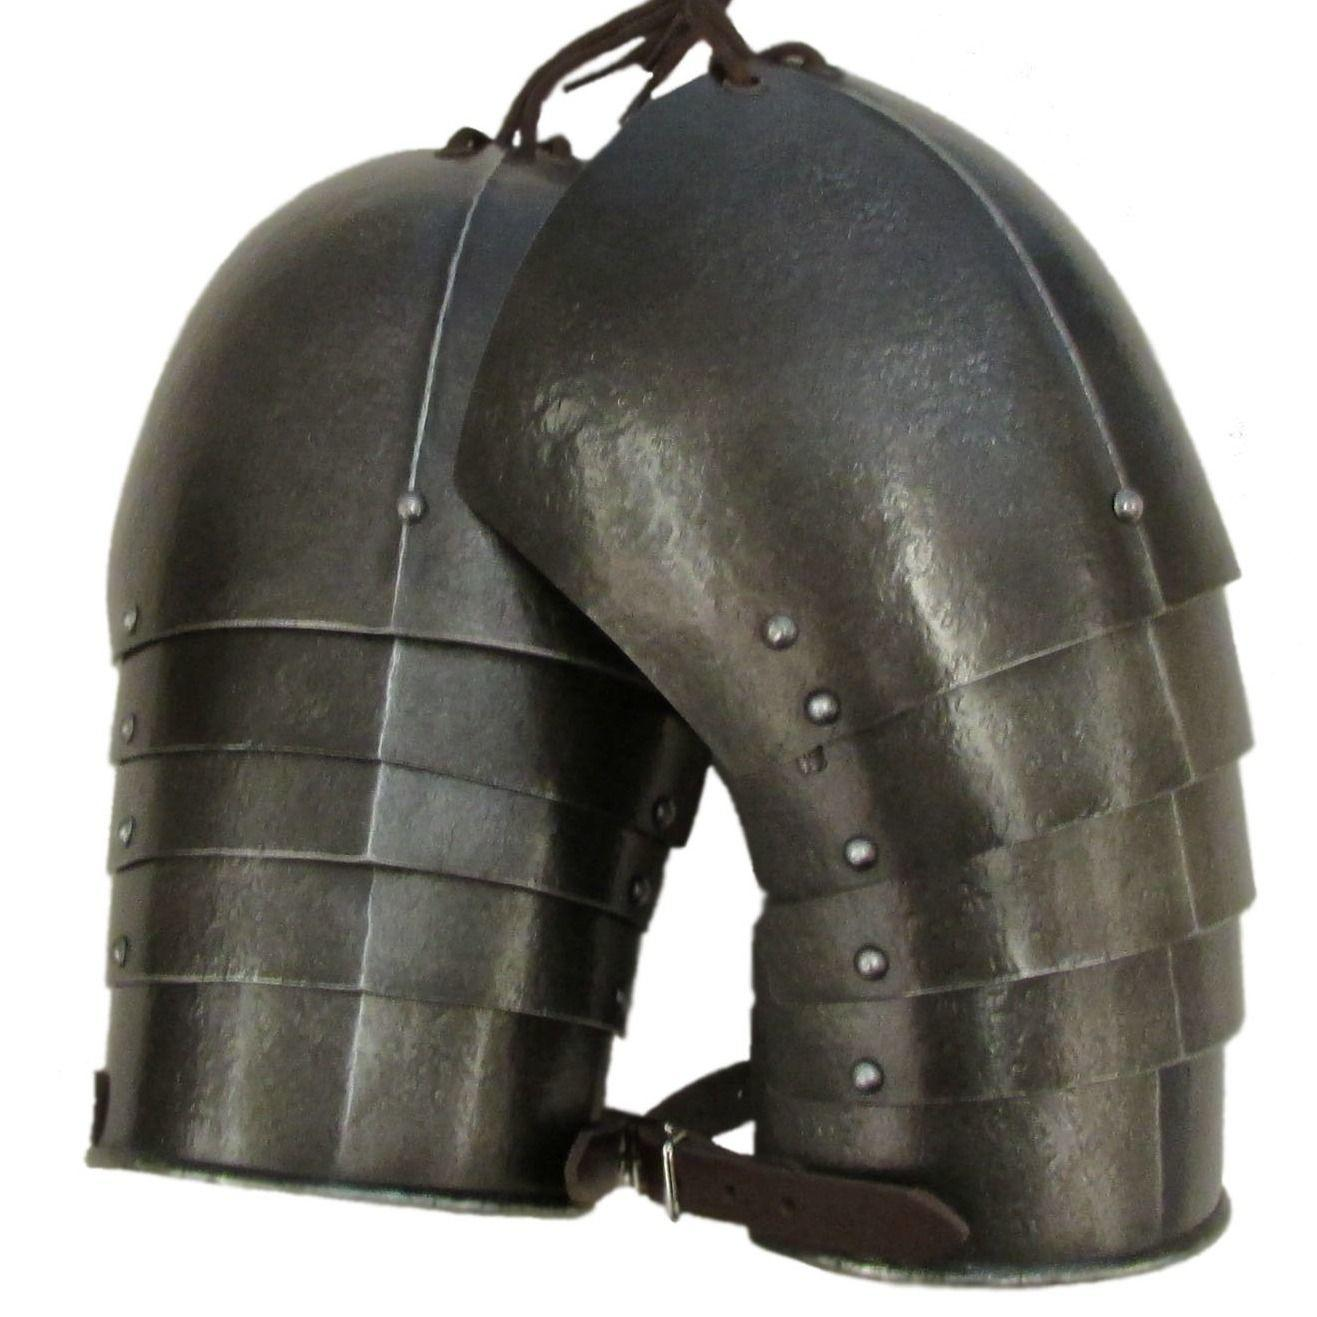 Mulit plate larp shoulders